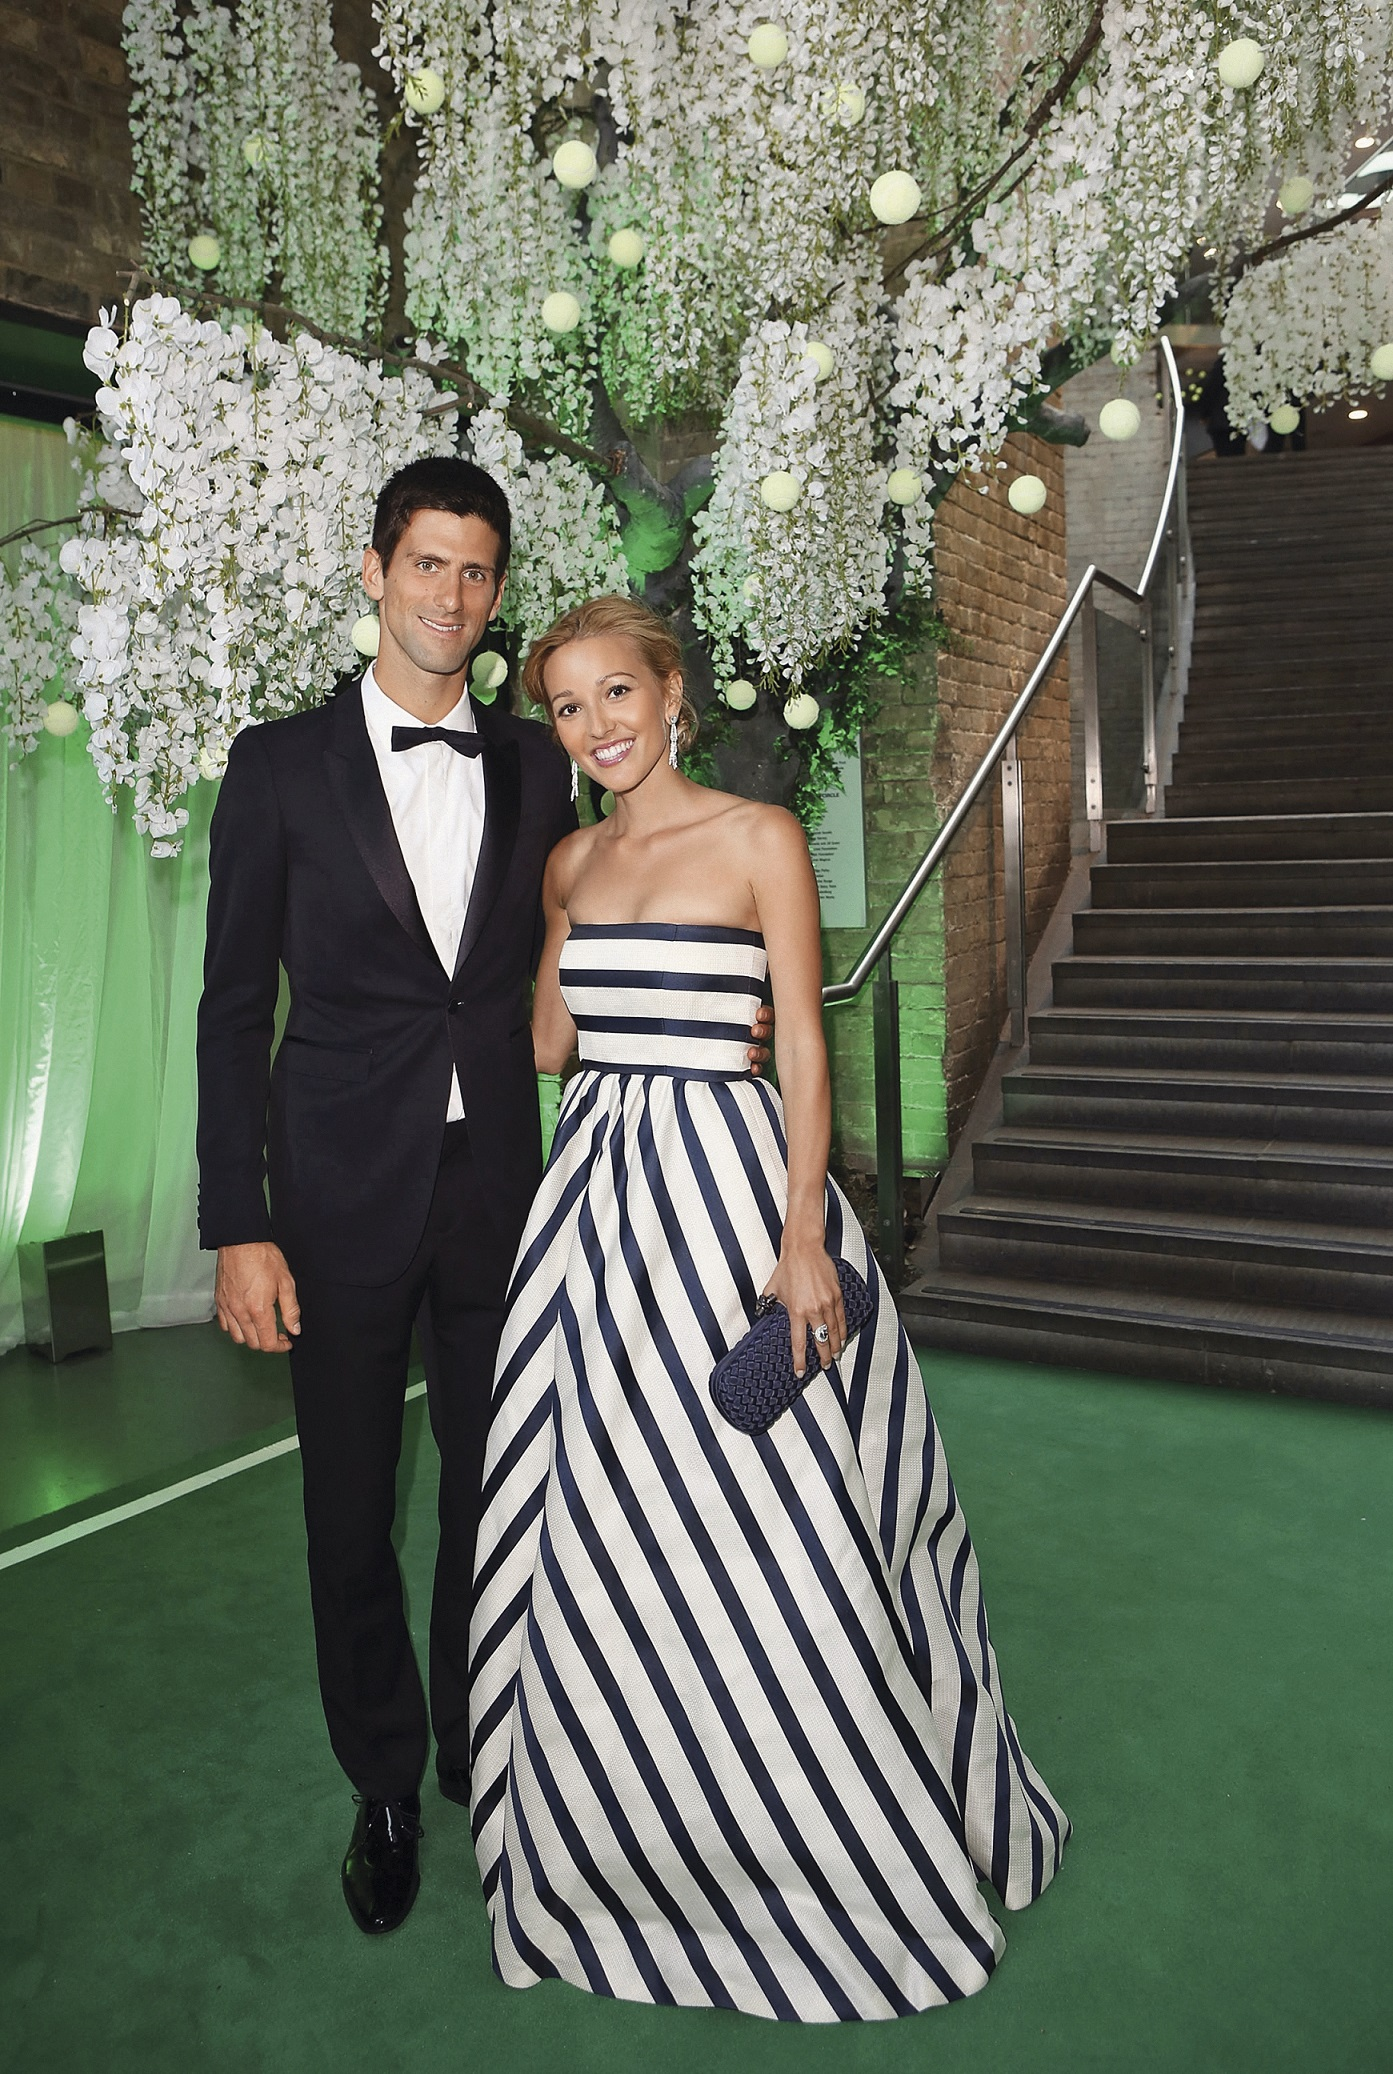 LONDON, ENGLAND - JULY 08:  Novak Djokovic and Jelena Ristic attend the Novak Djokovic Foundation inaugural London gala dinner at The Roundhouse on July 8, 2013 in London, England.  The foundation supports vulnerable and disadvantaged children, especially in Djokovics native Serbia.  (Photo by Tim P. Whitby/Getty Images for Novak Djokovic Foundation)